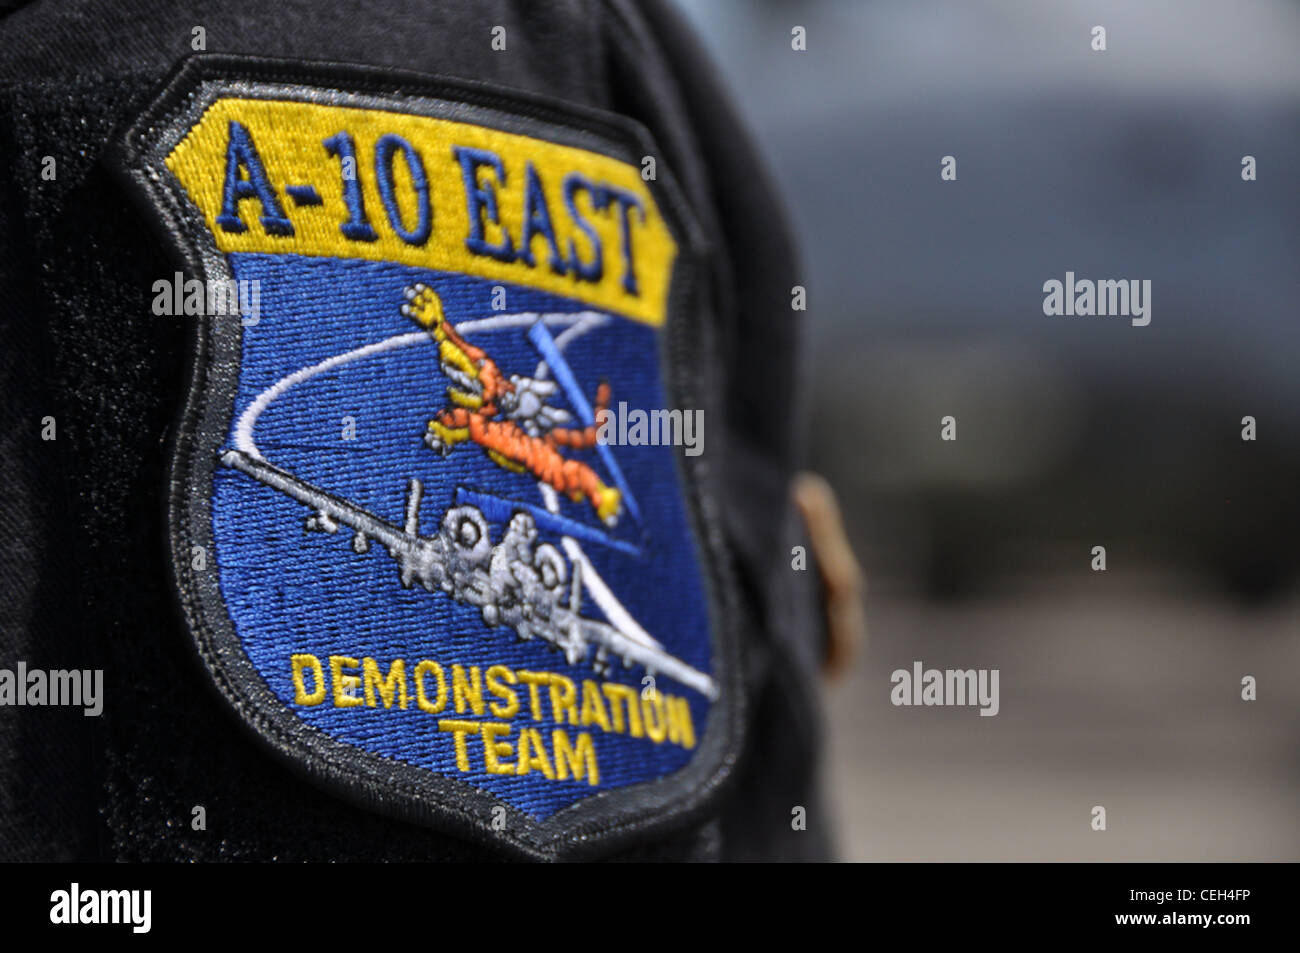 Changi Coast, Singapore - A-10 East Demonstration Team patch is proudly displayed on the shoulder of A-10 Thunderbolt - Stock Image